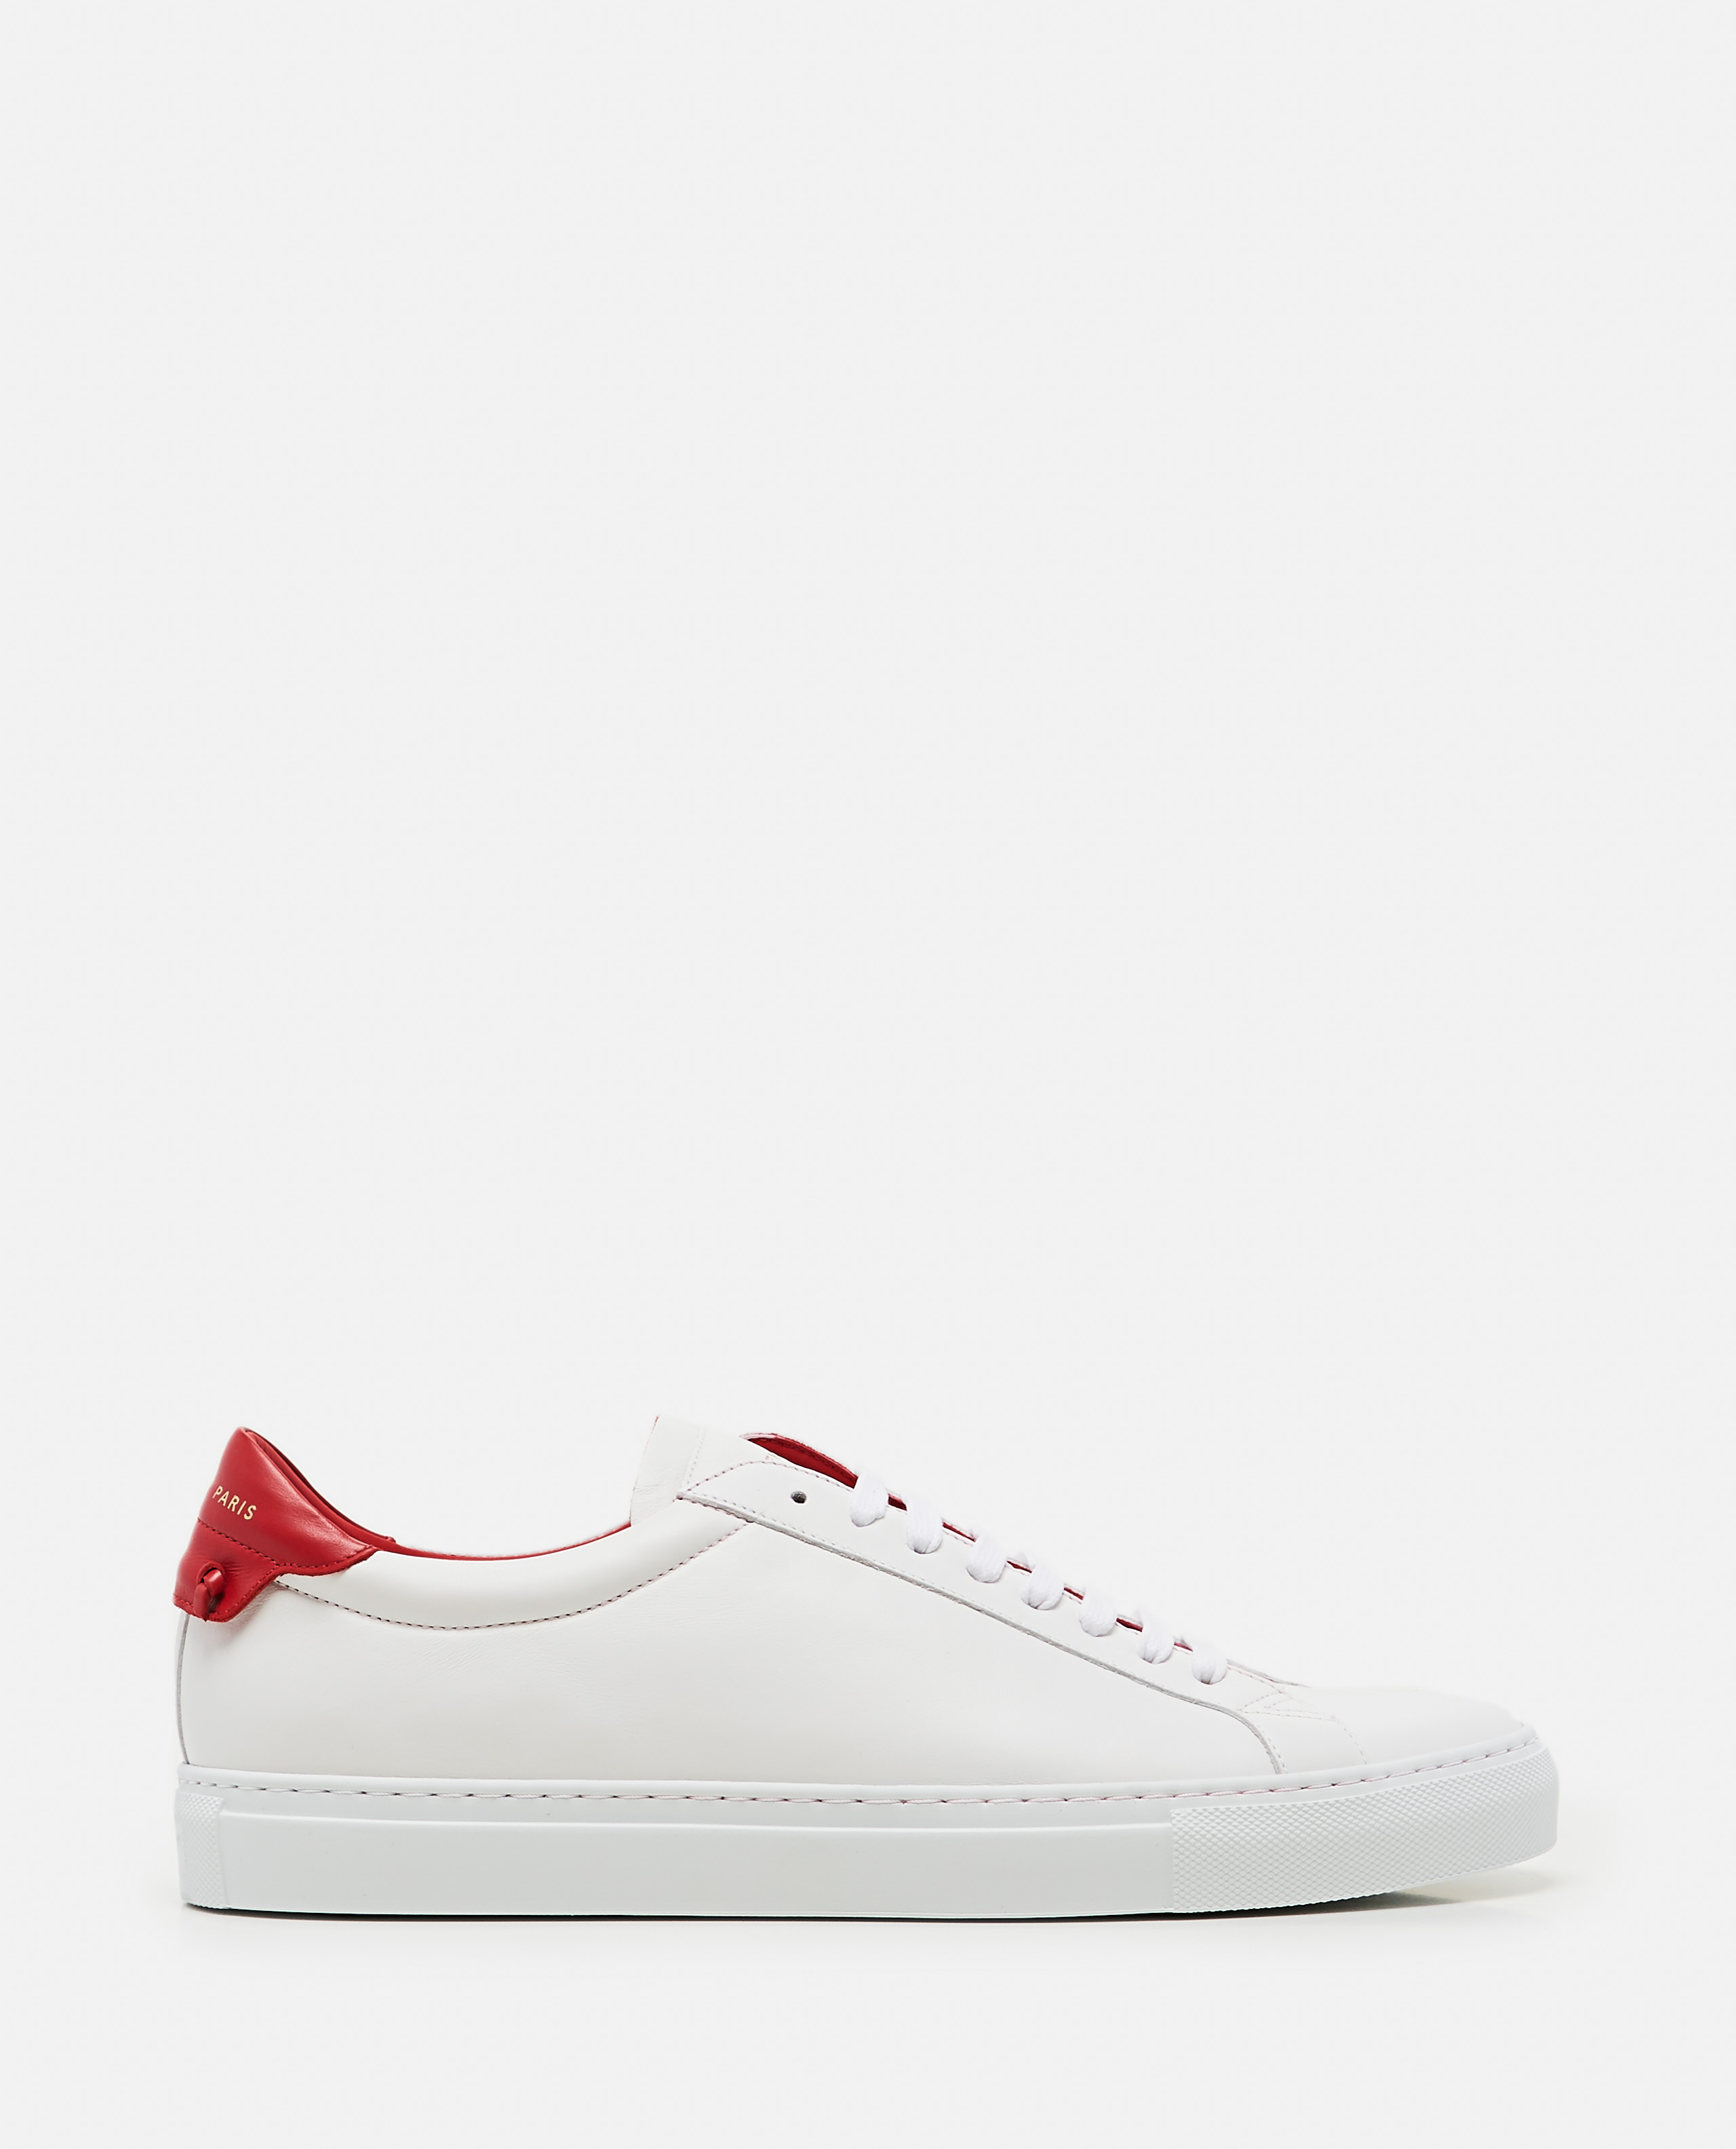 Givenchy Sneakers GIVENCHY SNEAKER URBAN STREET